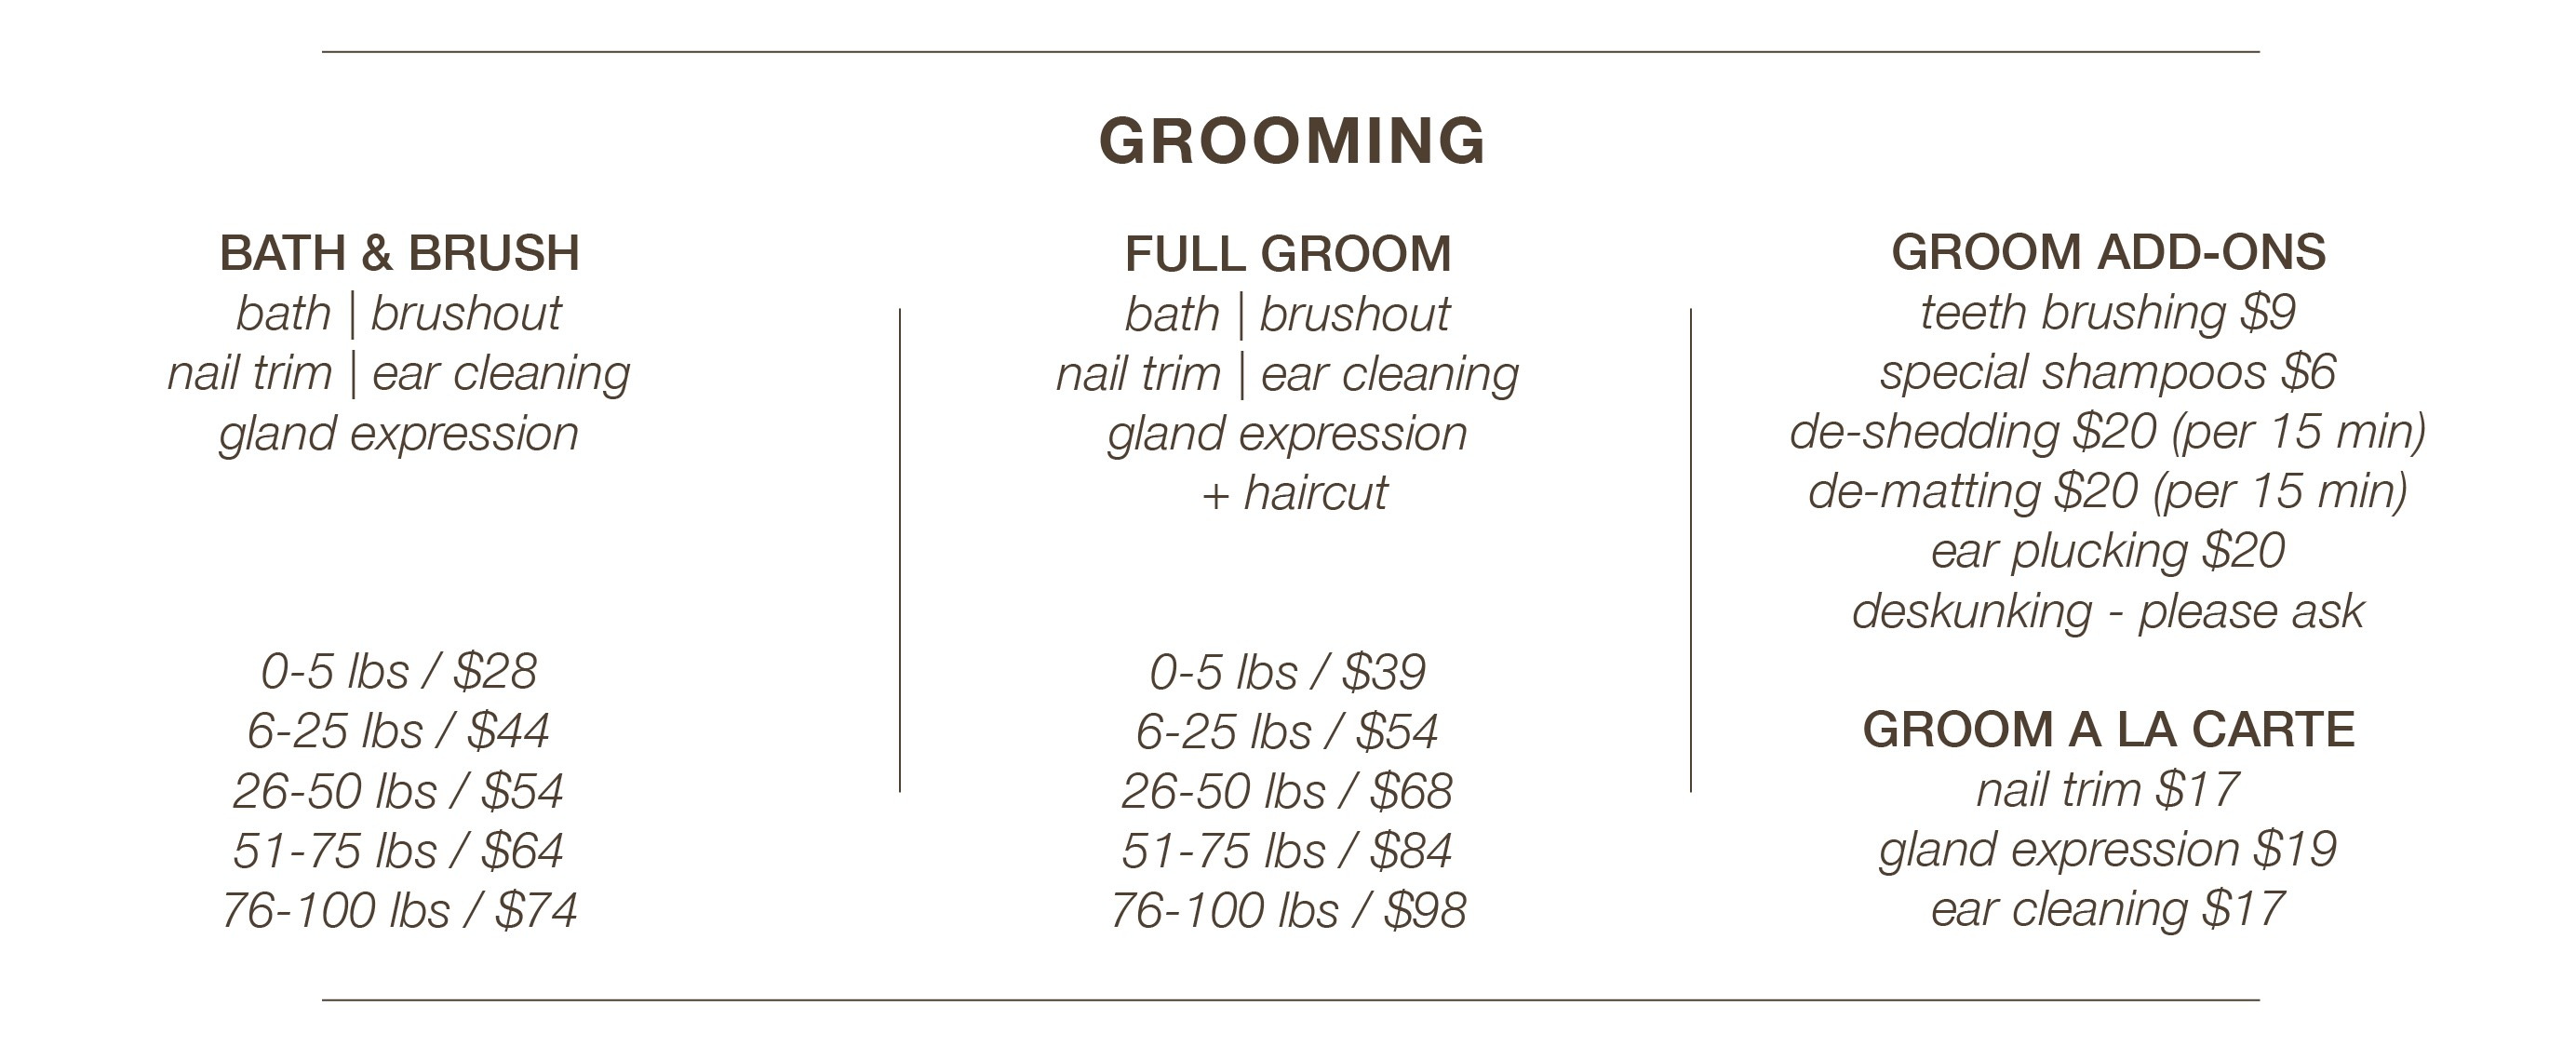 K9 Loft Grooming Prices